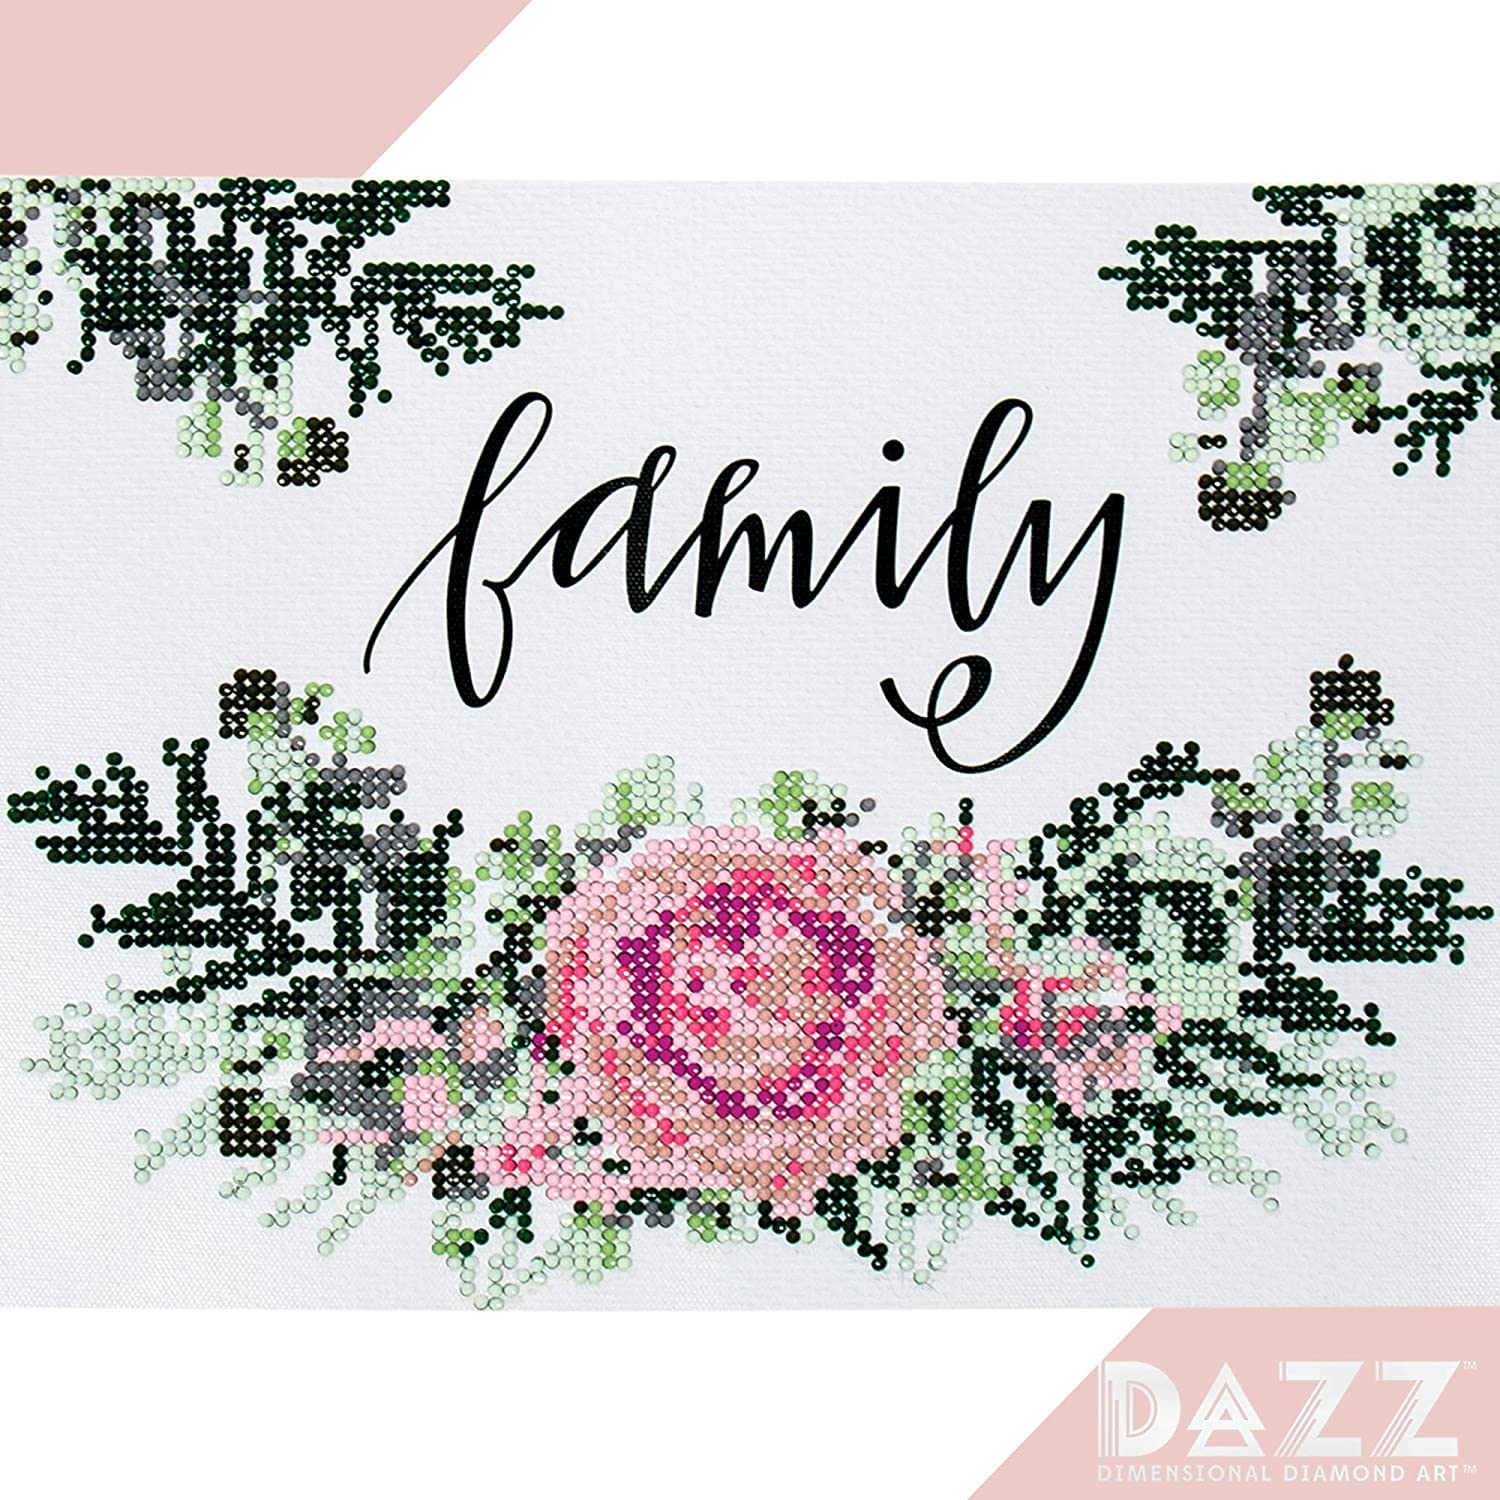 Dazz 3D Gemstone Painting Family Banner Kit by Horizon Group USA, 9x12 Diamond Dotz Painting, Rhinestone Wall Décor for Adults & Children, Gem Tray & Stylus Included. Multicolored